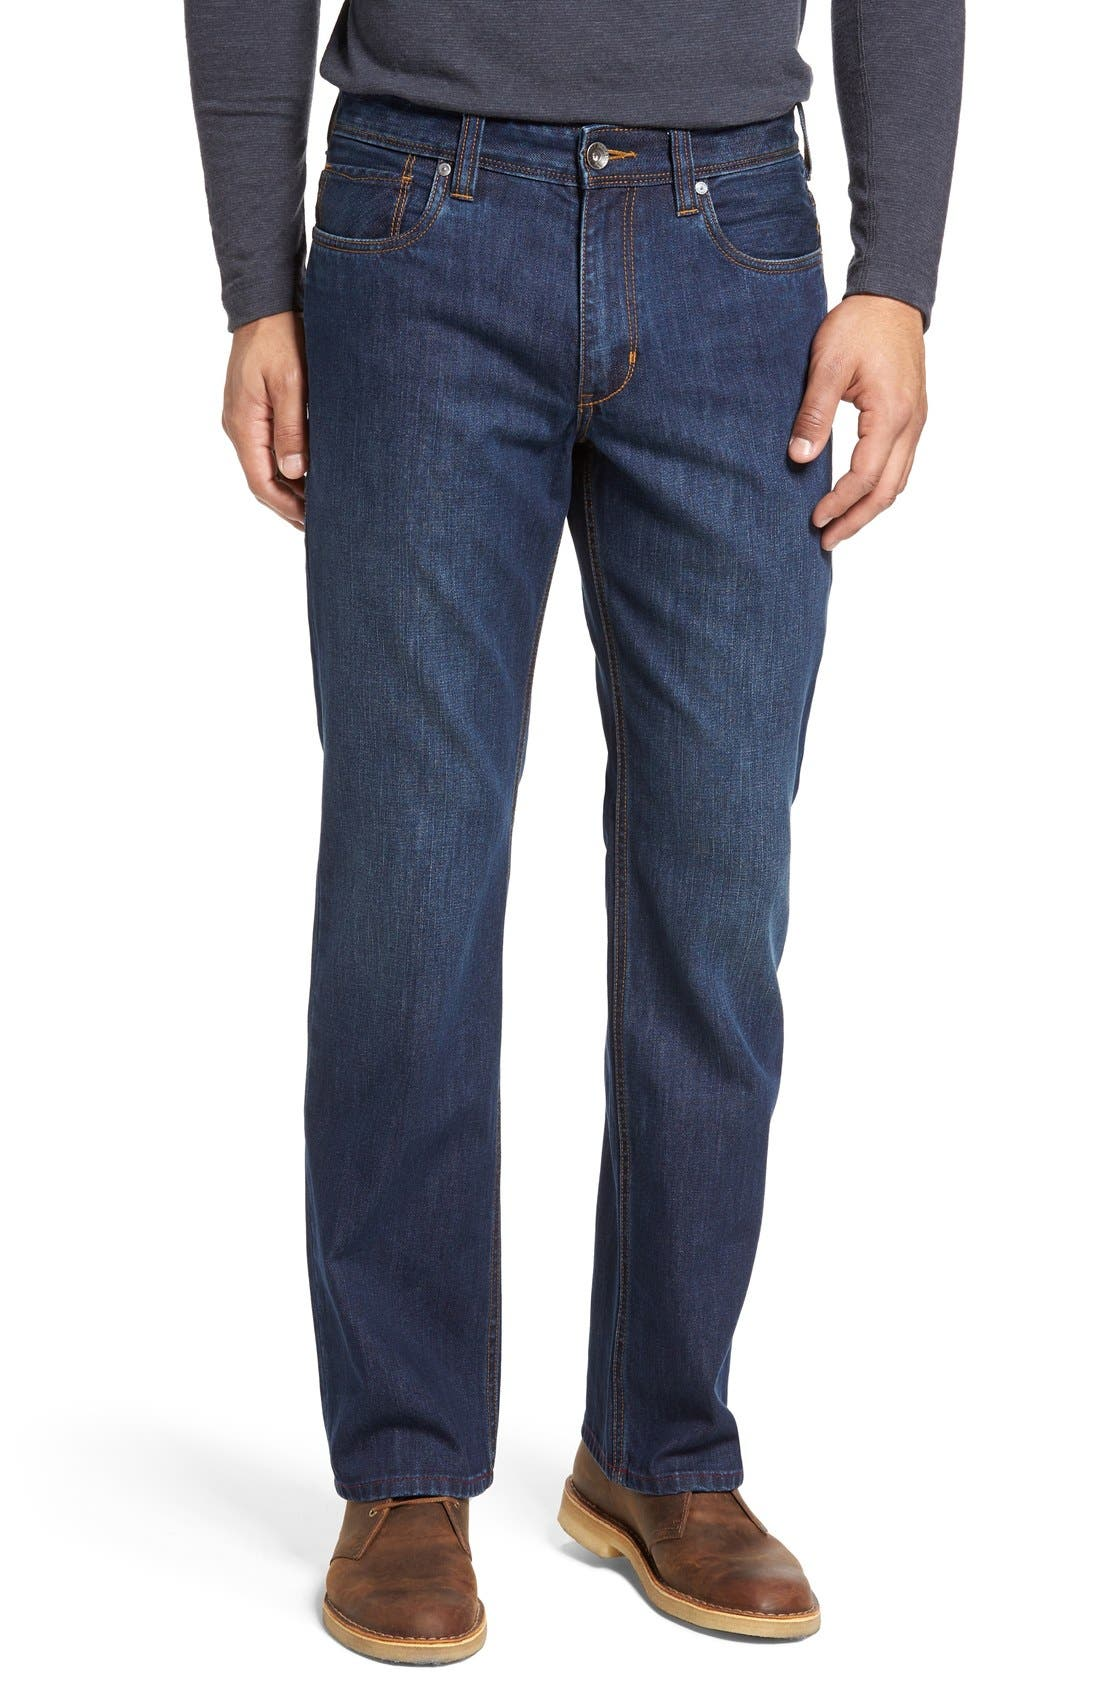 Main Image - Tommy Bahama 'Santorini' Relaxed Fit Jeans